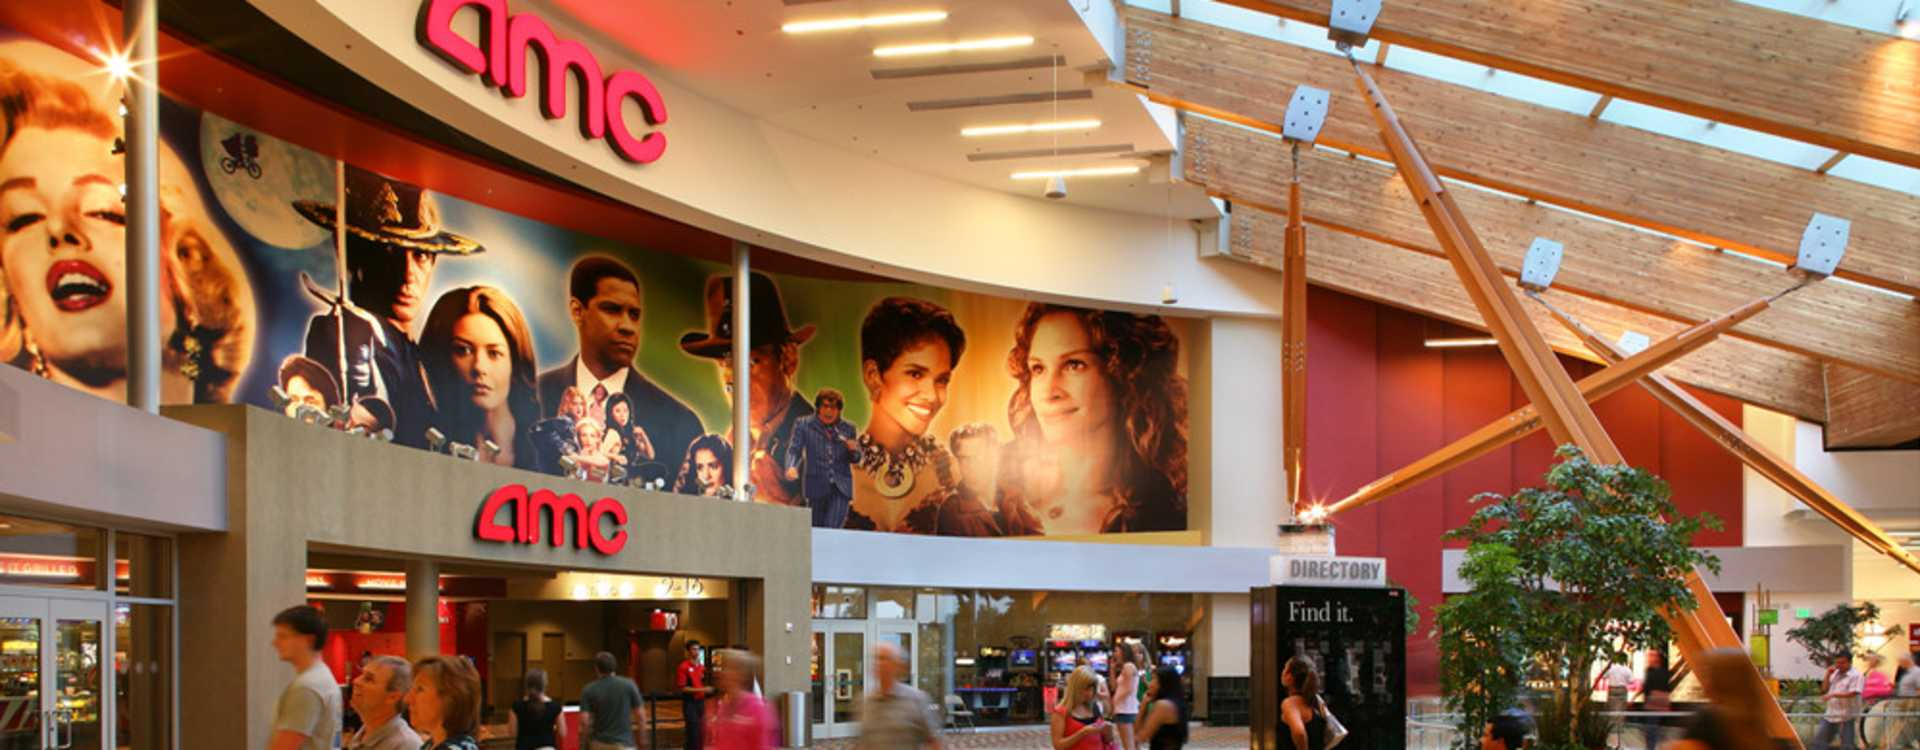 Westfield_Southcenter-6.tiff